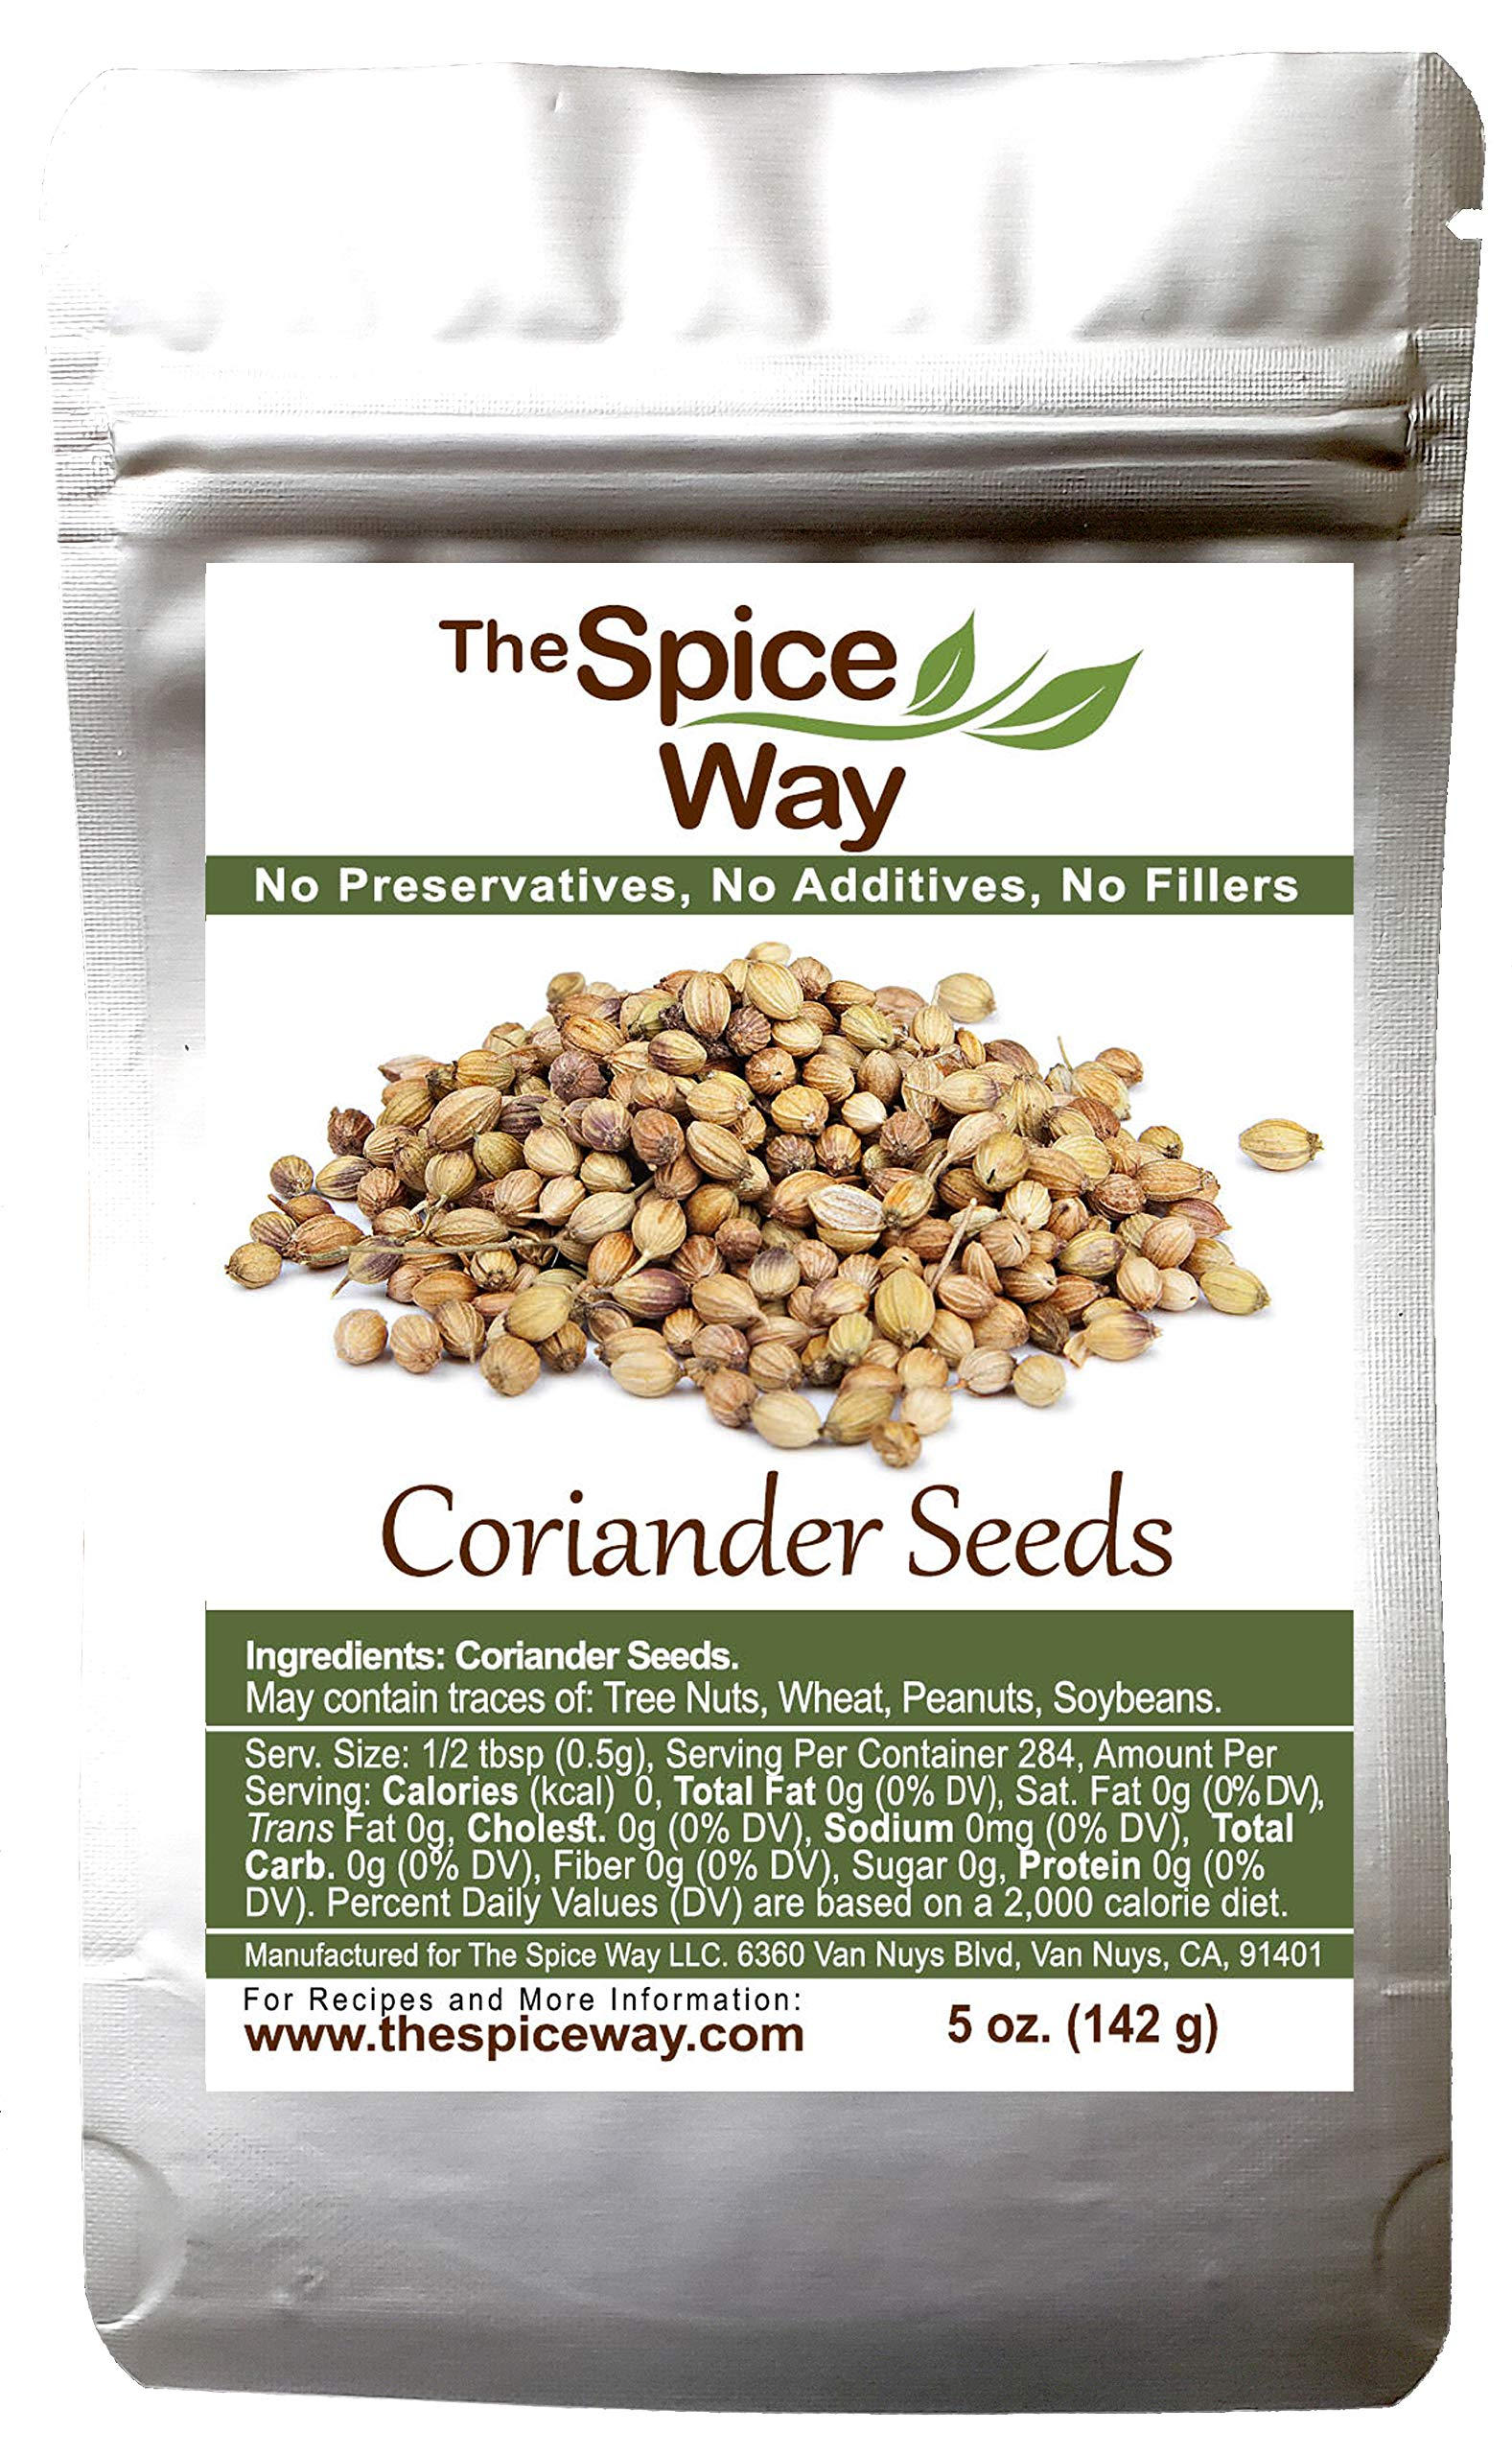 The Spice Way Coriander Seeds - 5 oz